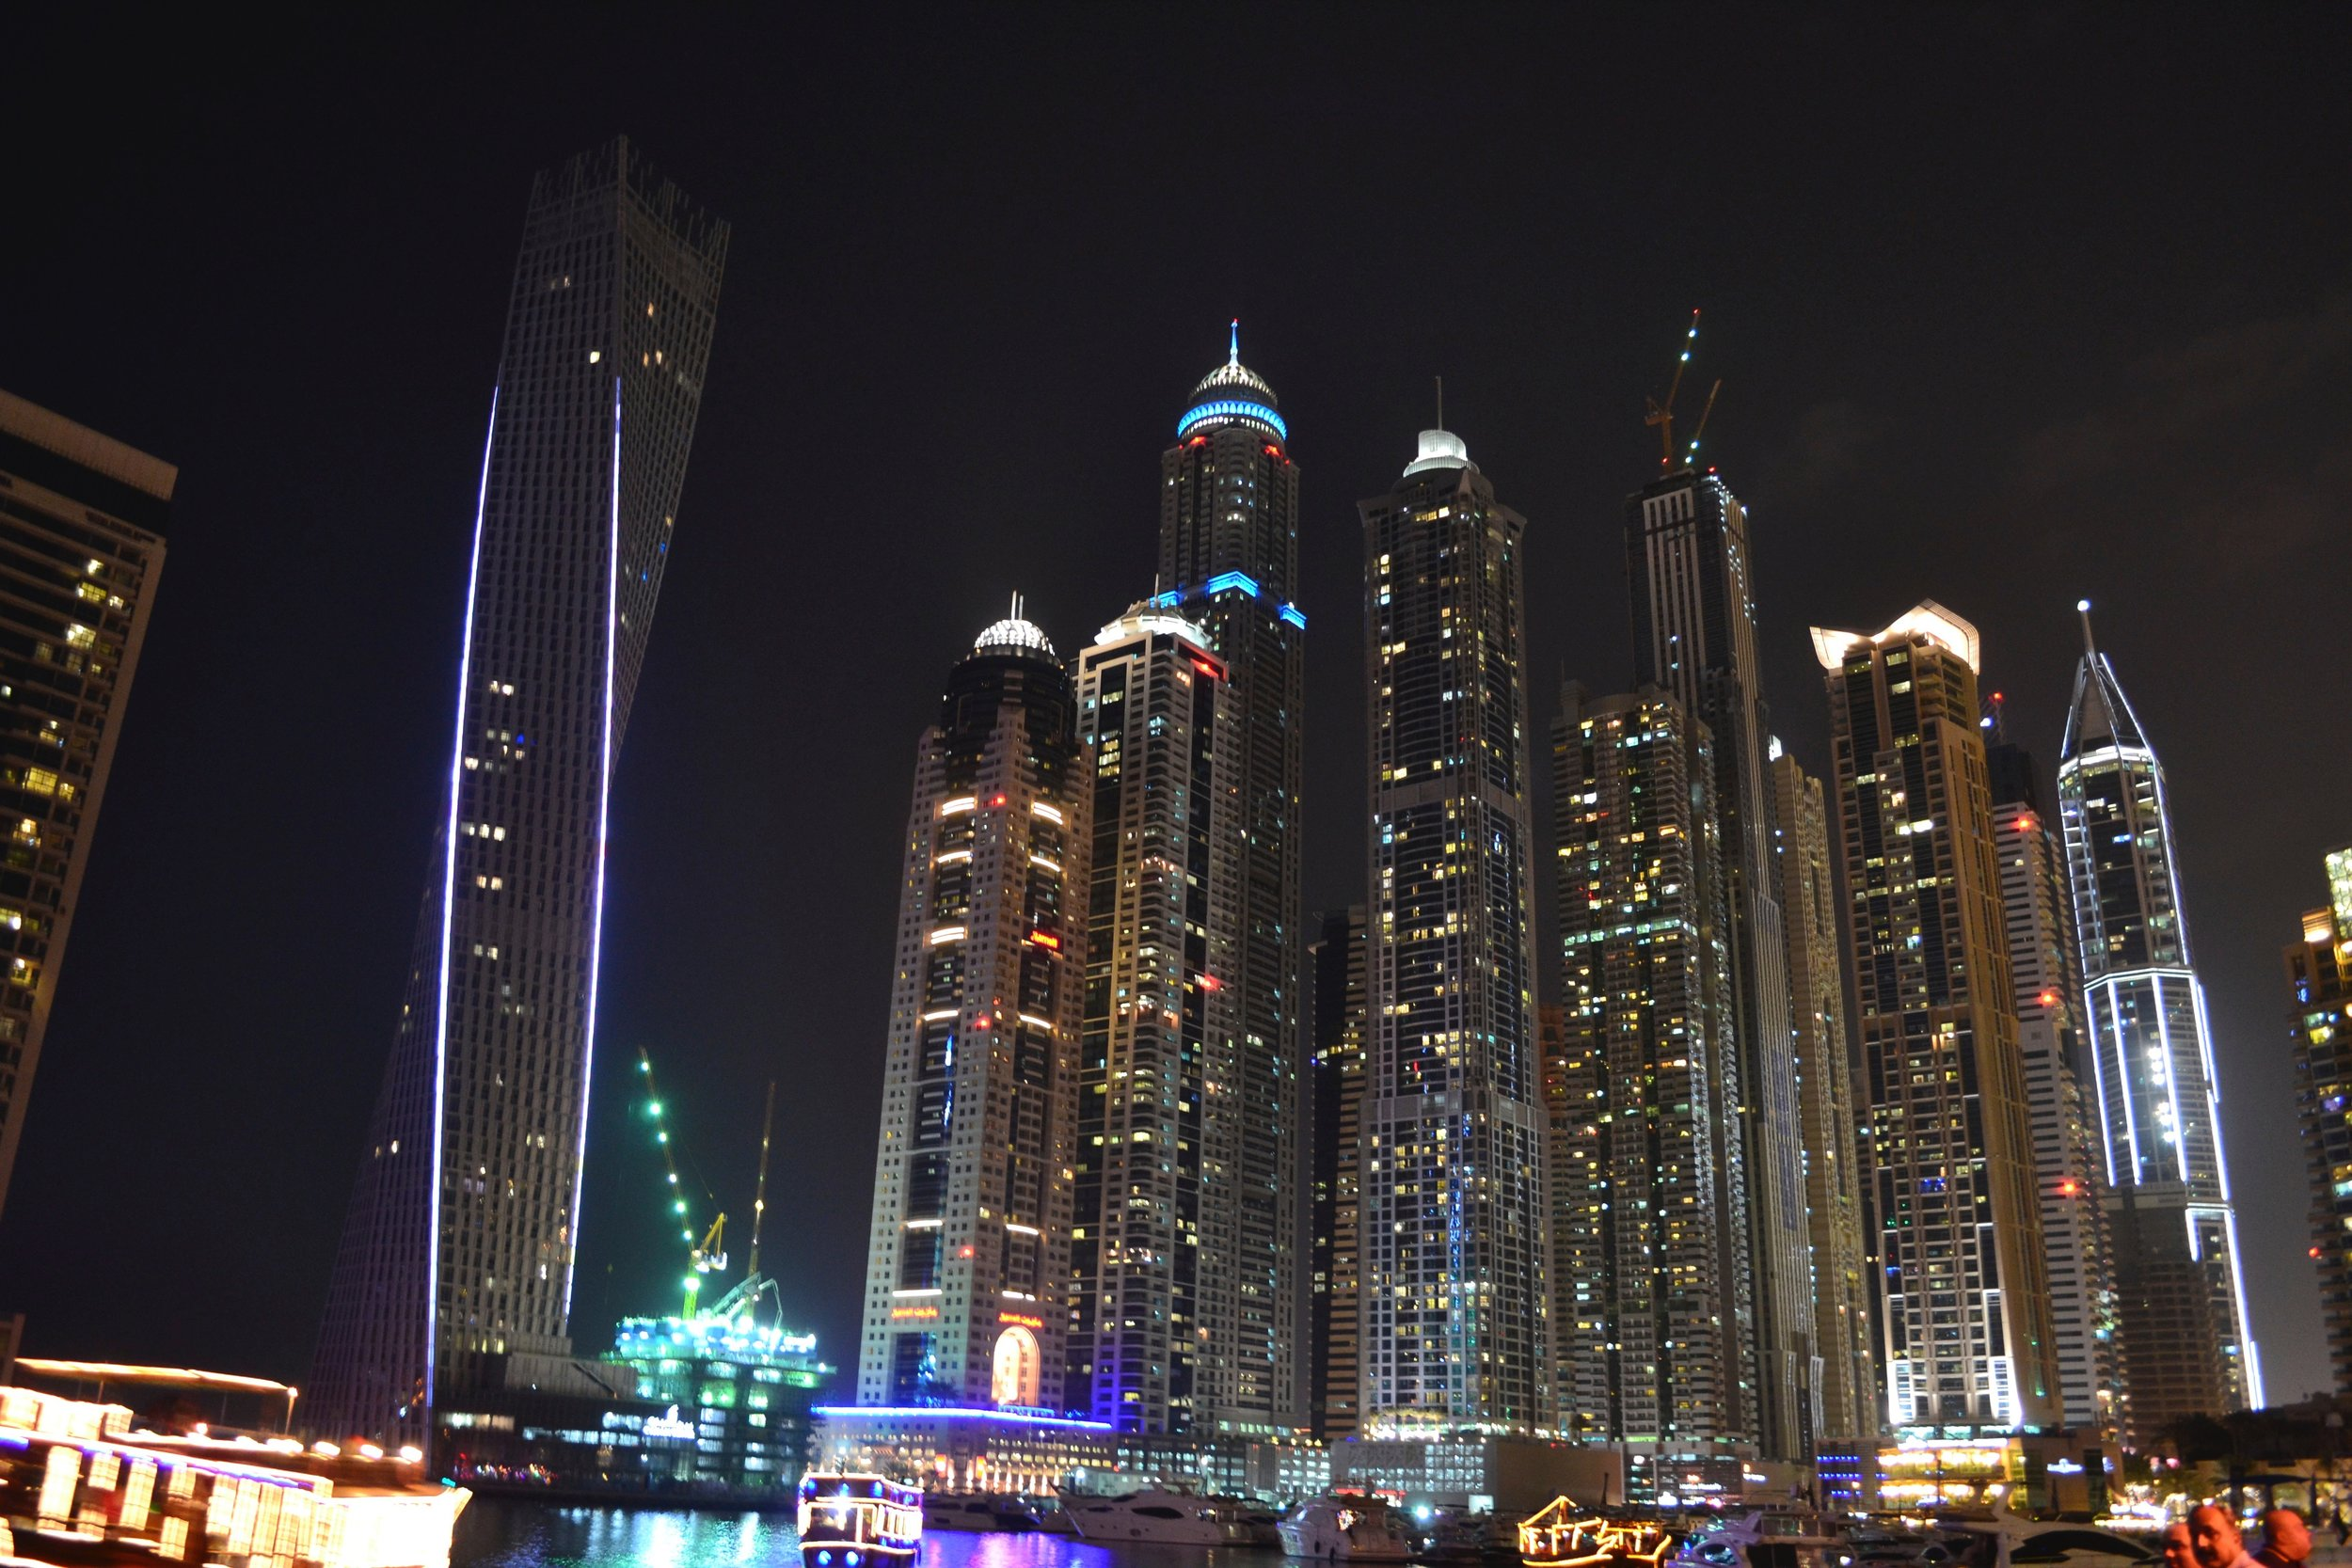 Dubai Marina in the United Arab Emirates